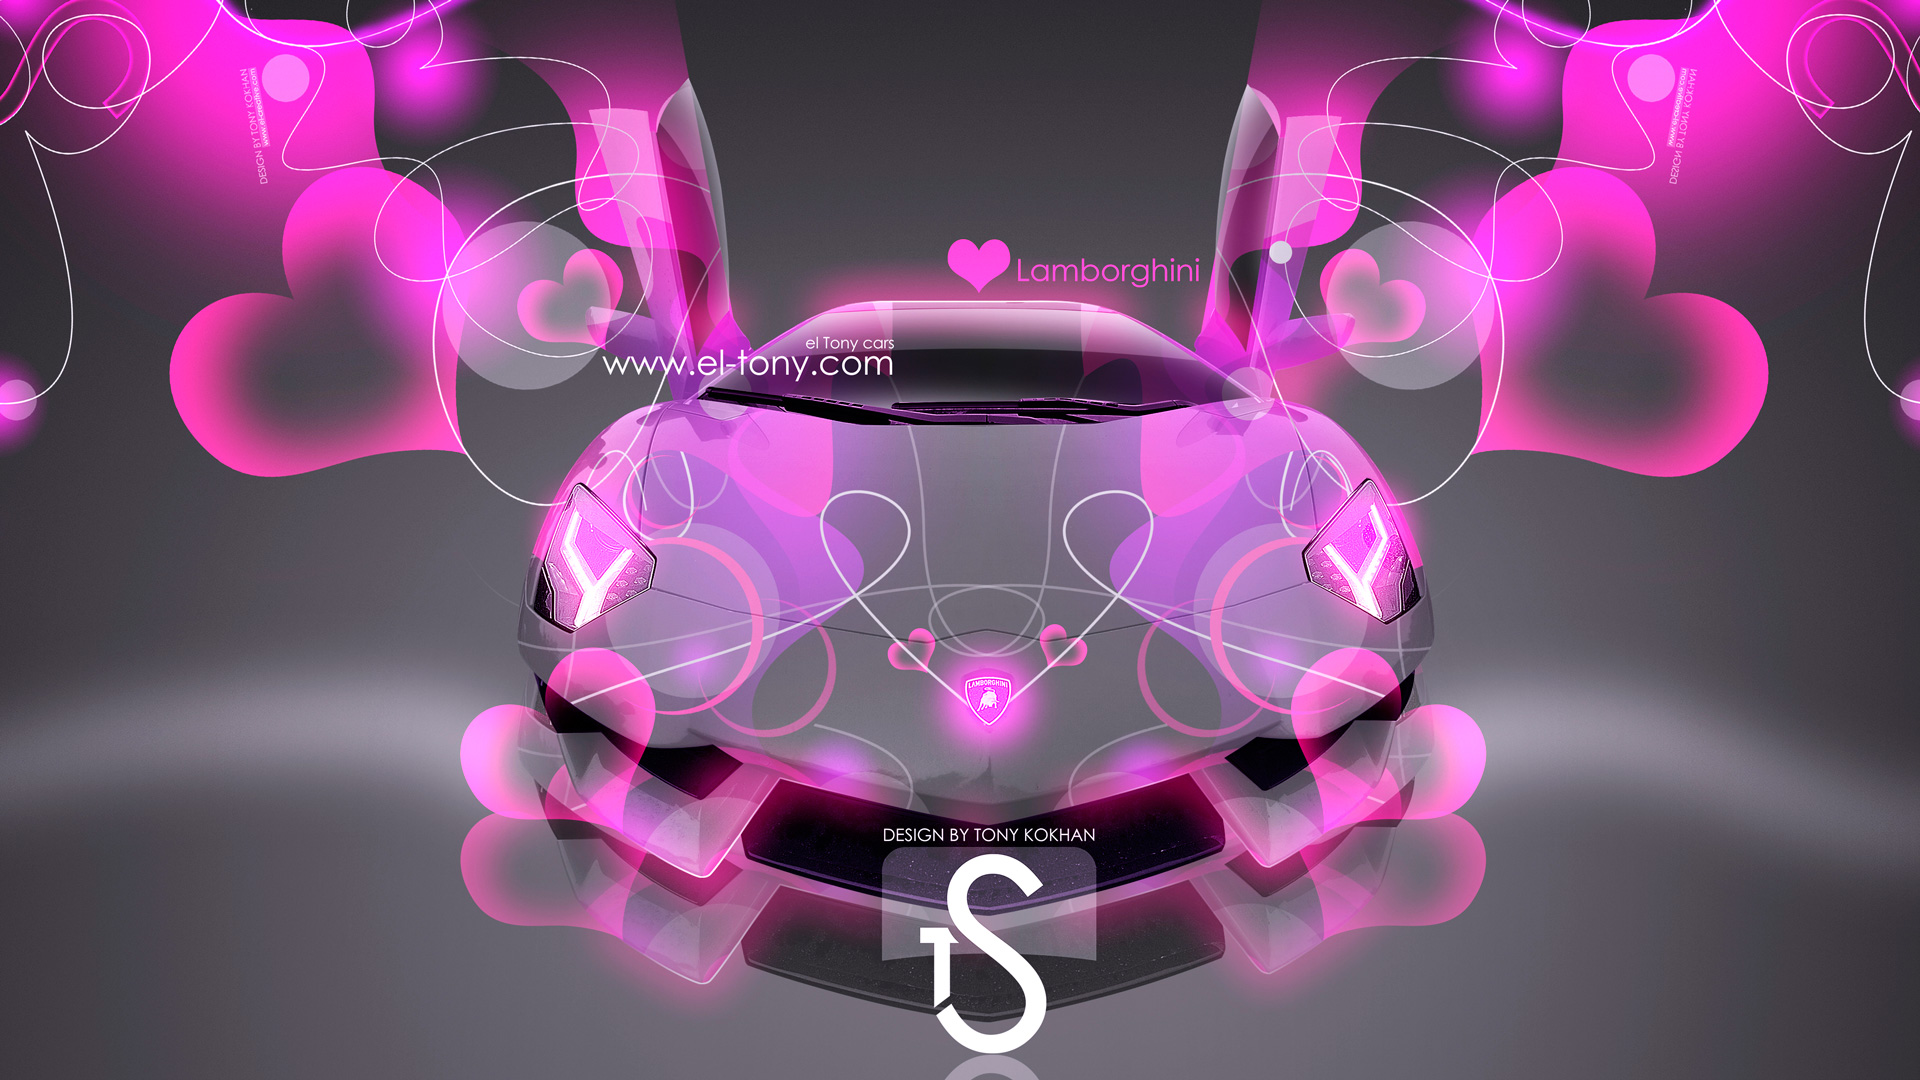 Lamborghini Aventador Pink Abstract Effects 2013 HD Wallpapers